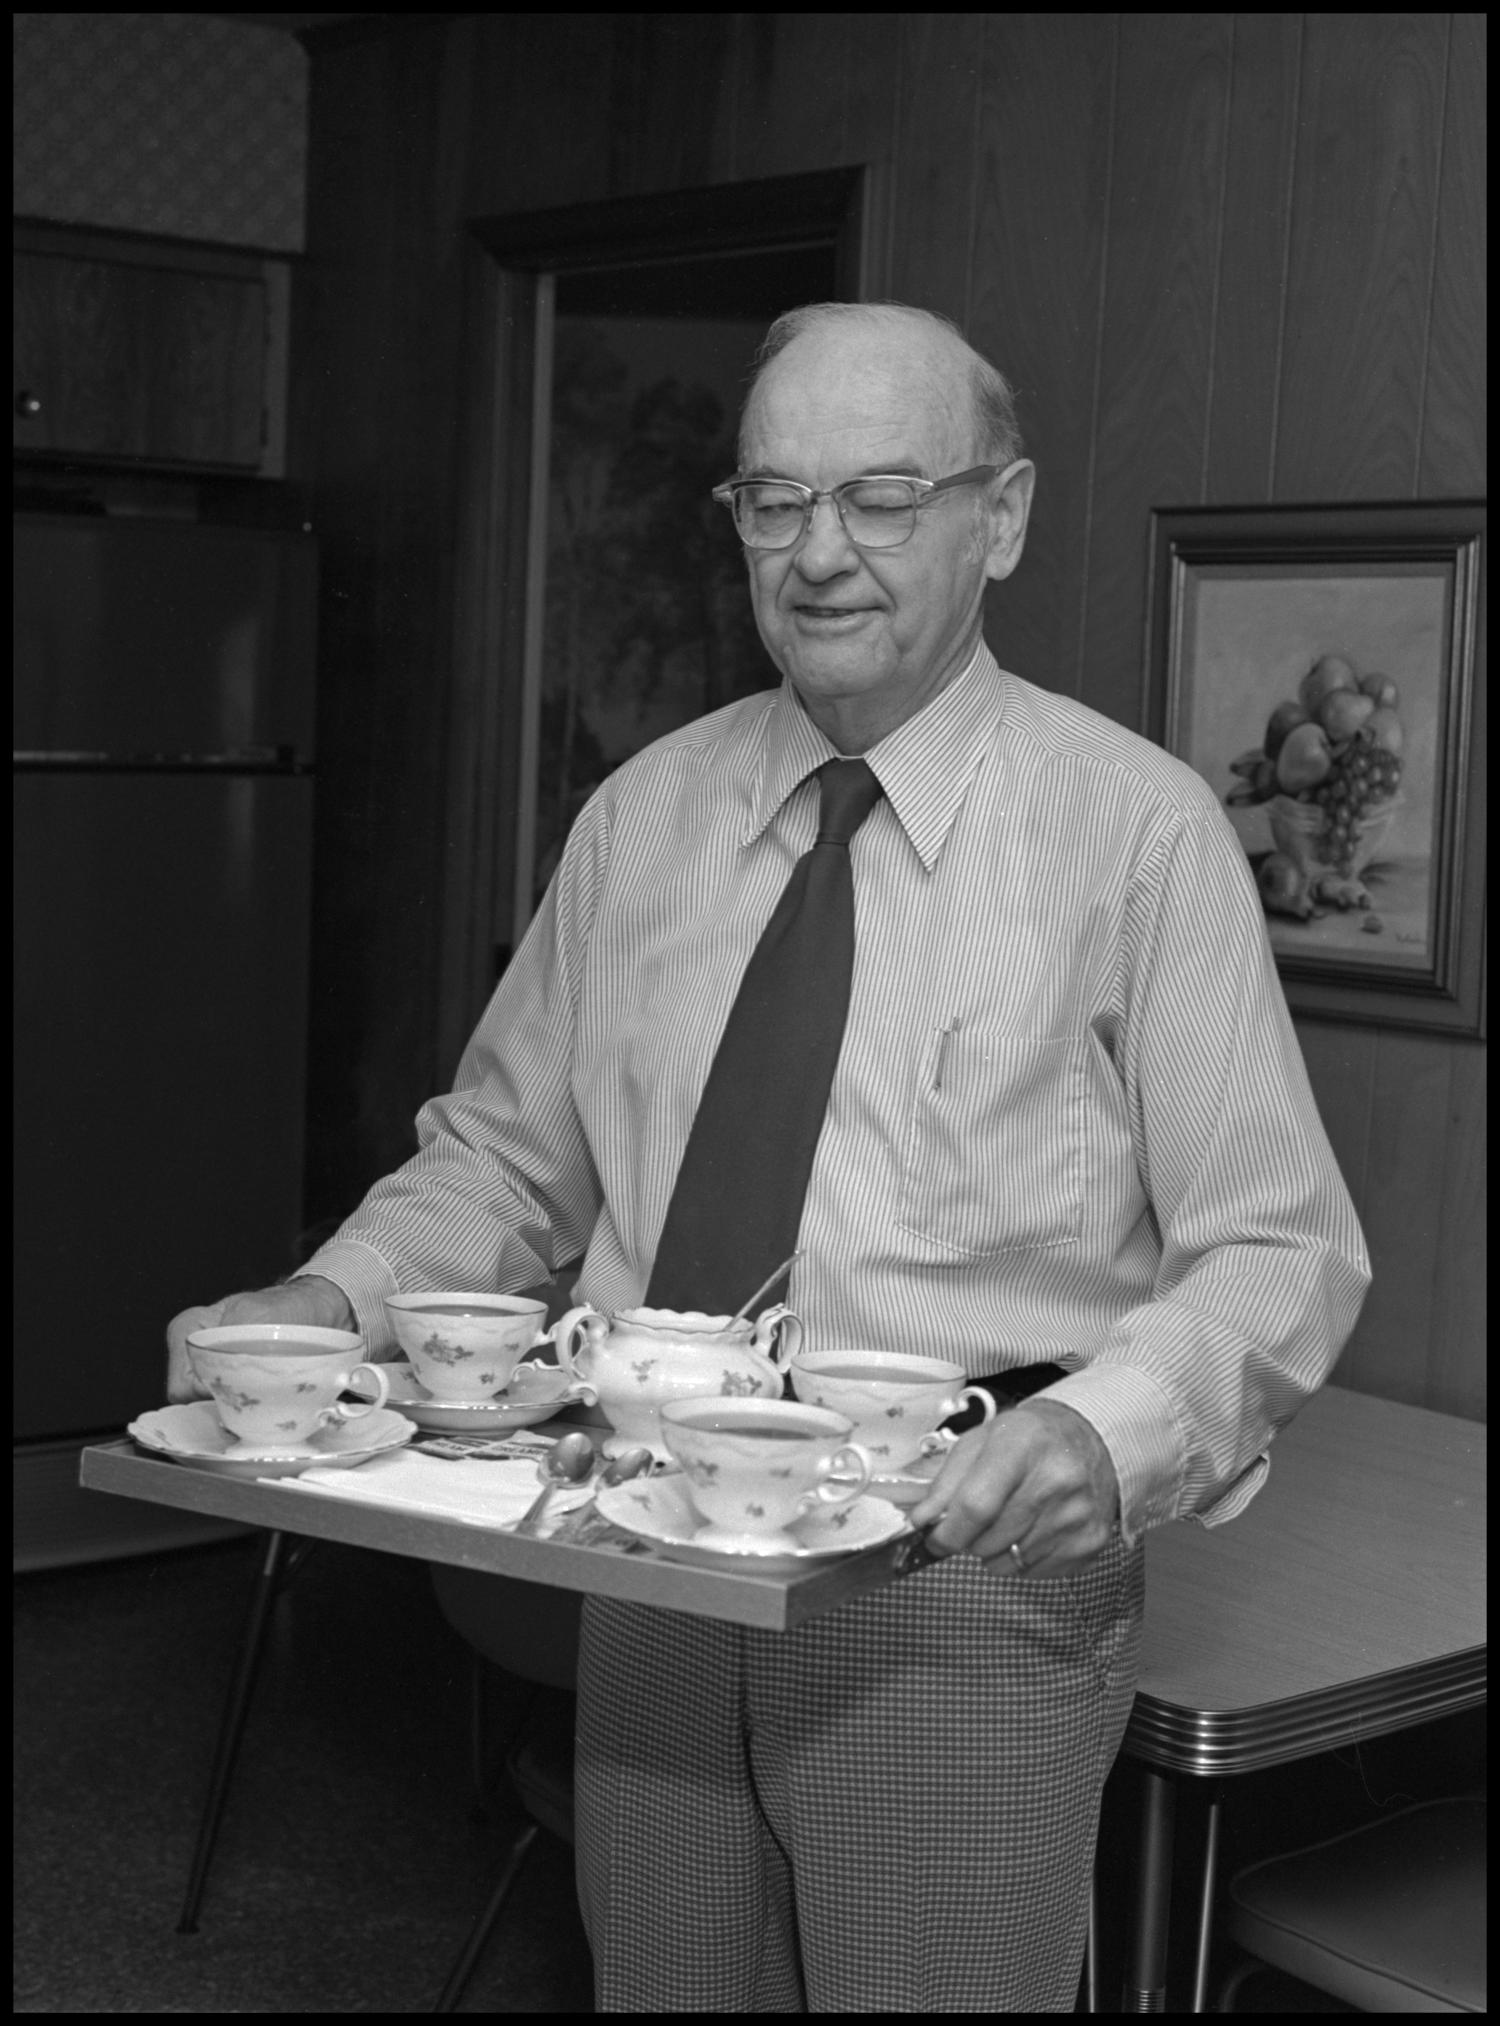 [Garland Brookshear carrying a tea tray], Photograph of Garland Brookshear, a member of the Management faculty at NTSU, carrying a tea tray for guests. Behind him is a table and a fridge. Brookshear is being photographed for his retirement.,